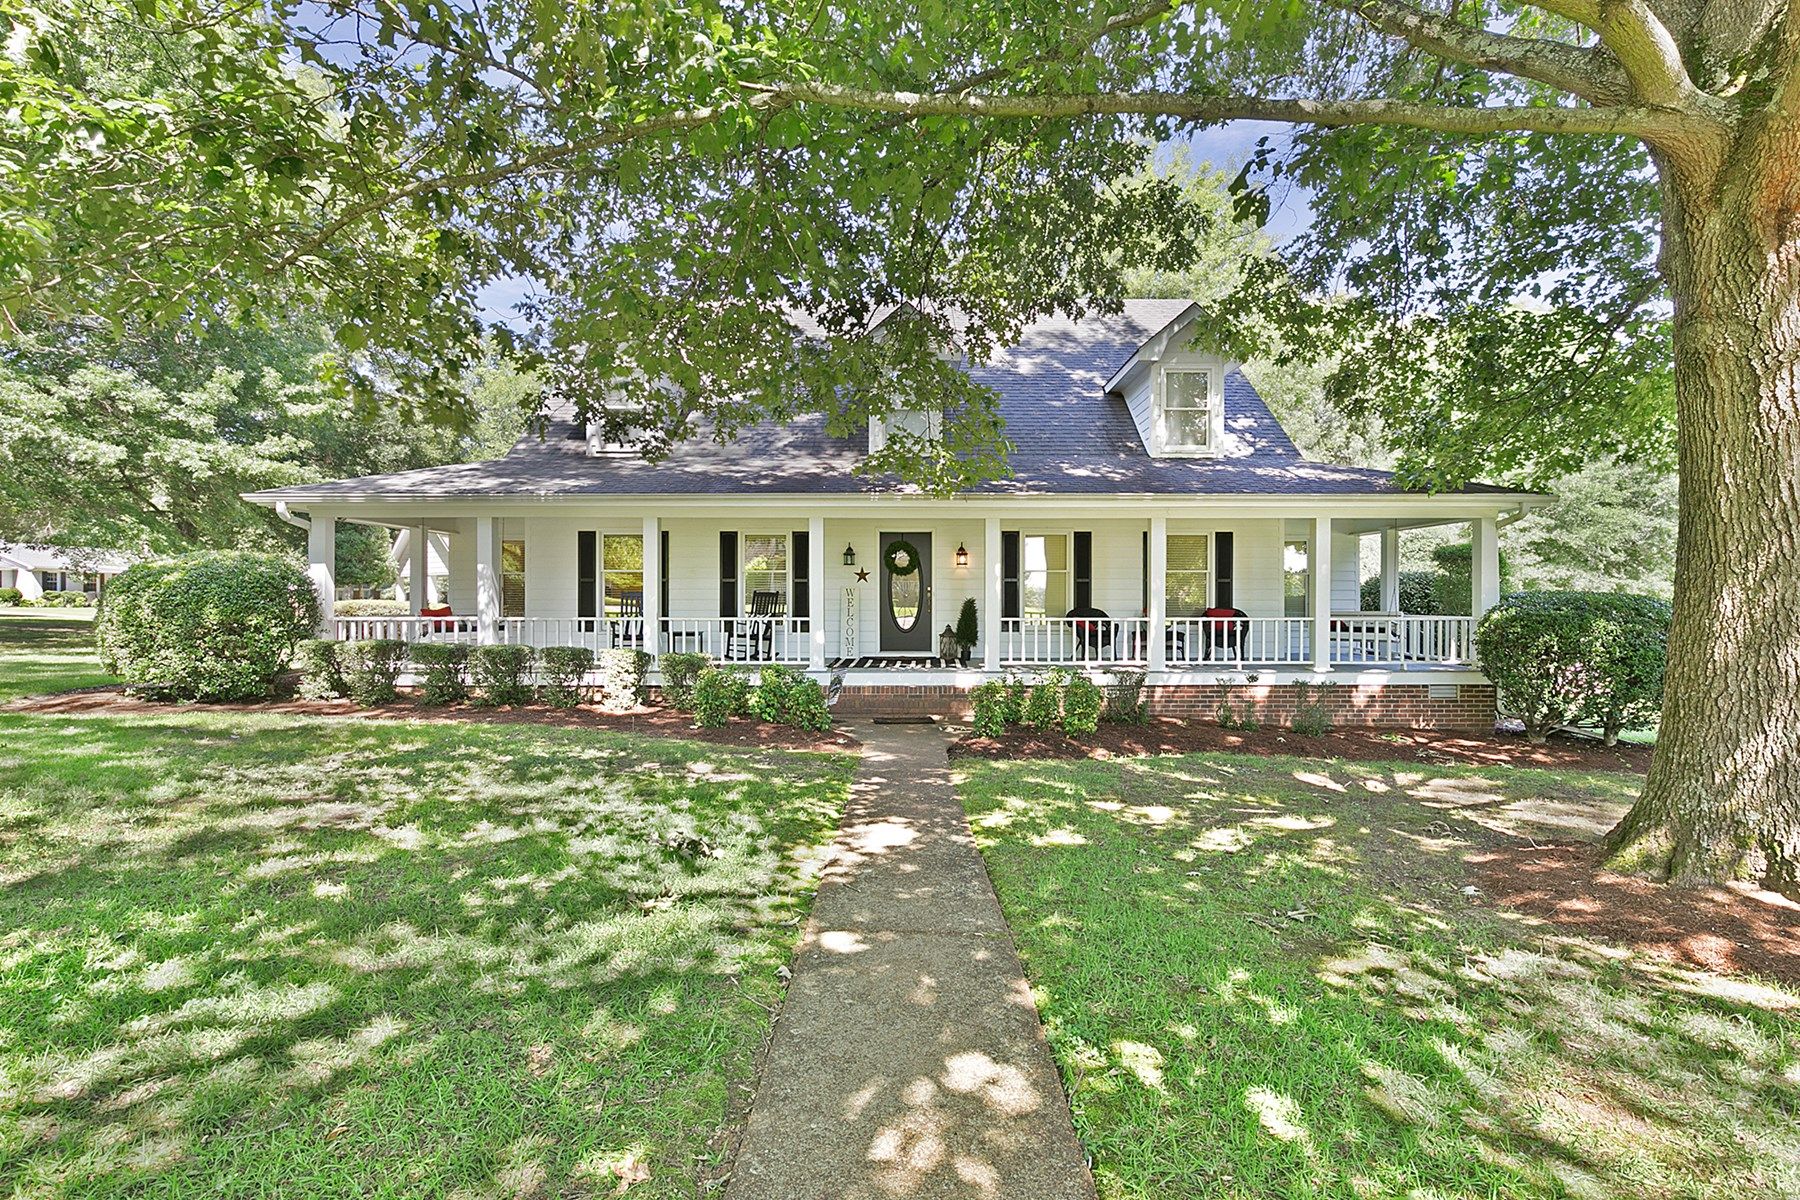 Farm House for Sale on 1 acre - Wooded & Shaded lot in Town